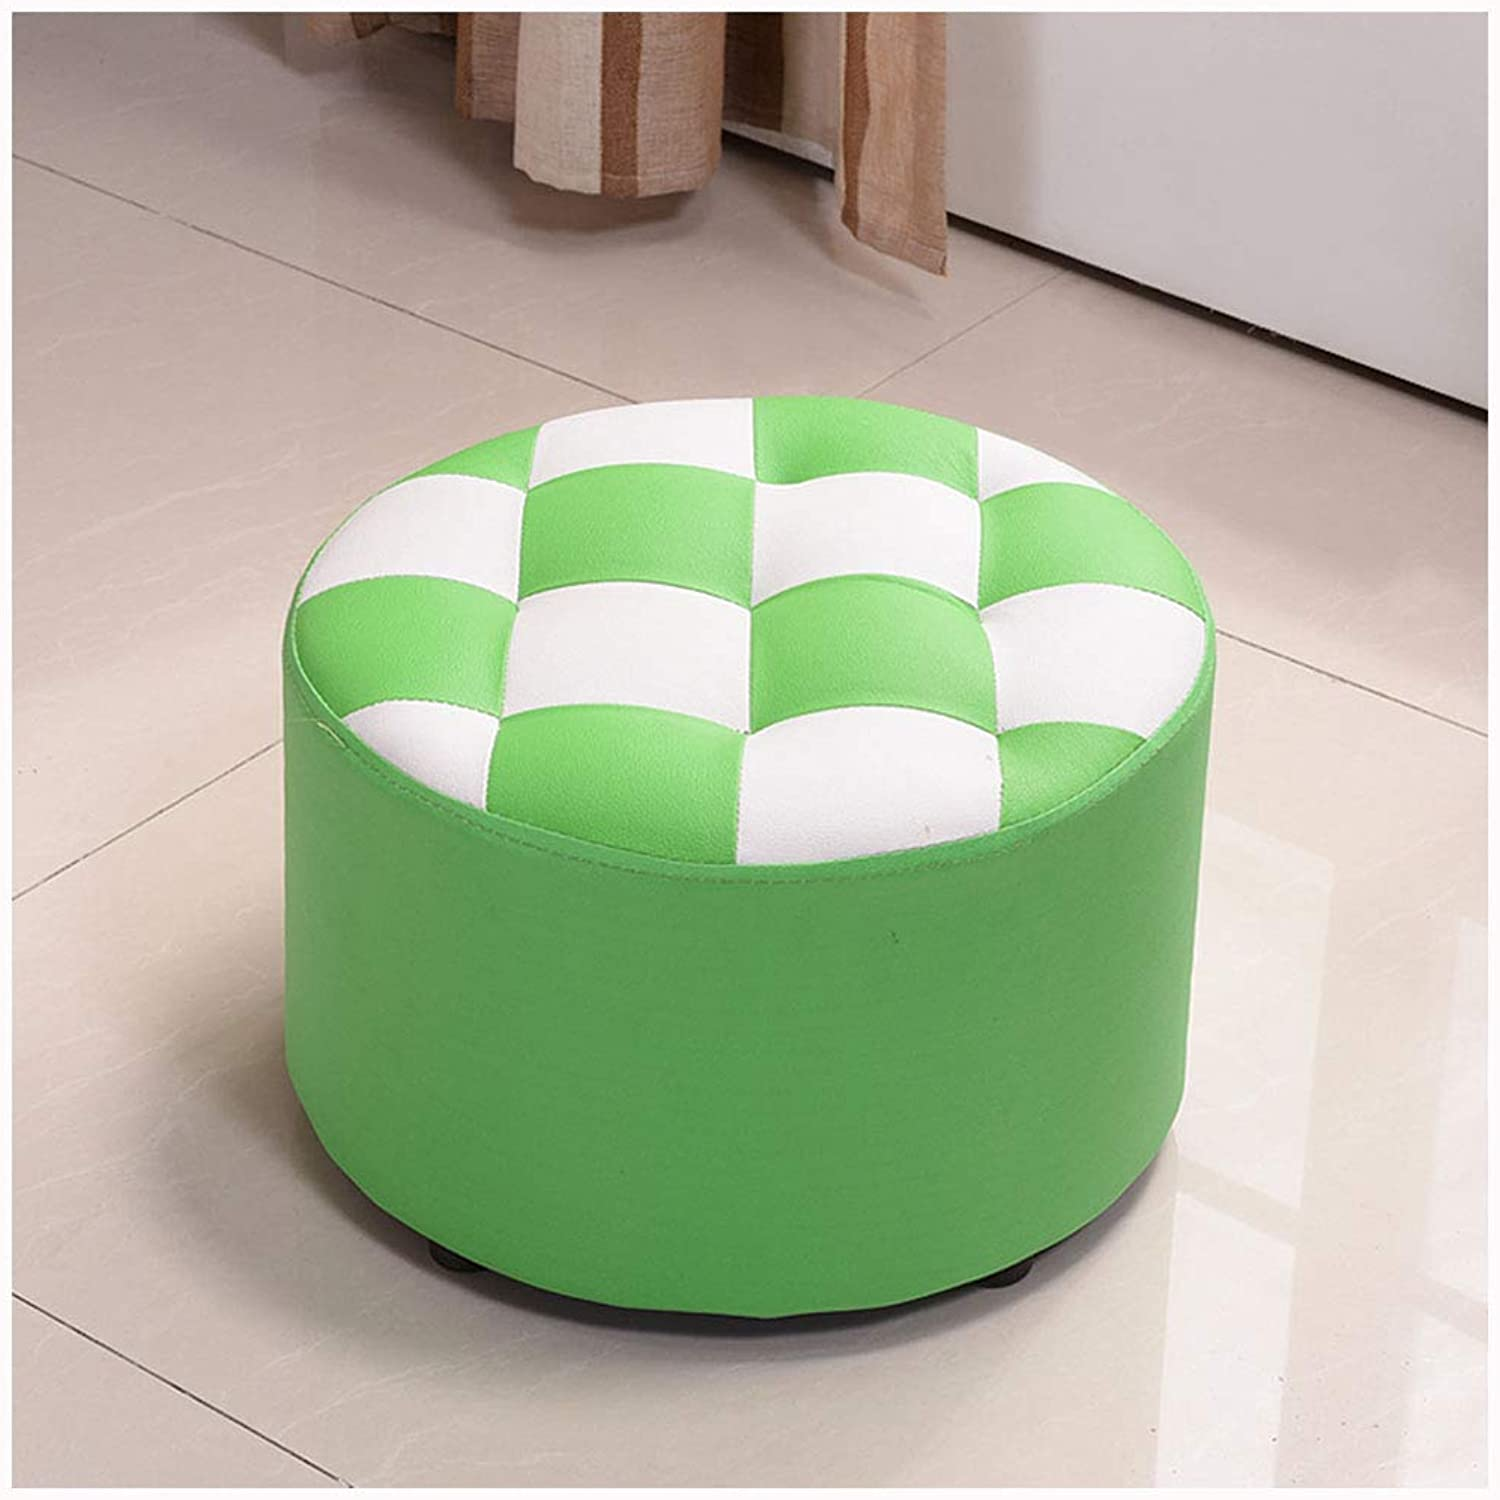 SMC stool Fashion Creative Solid Wood Small Bench Round Short Coffee Table Stool Home Leather shoes Bench (color   Green)